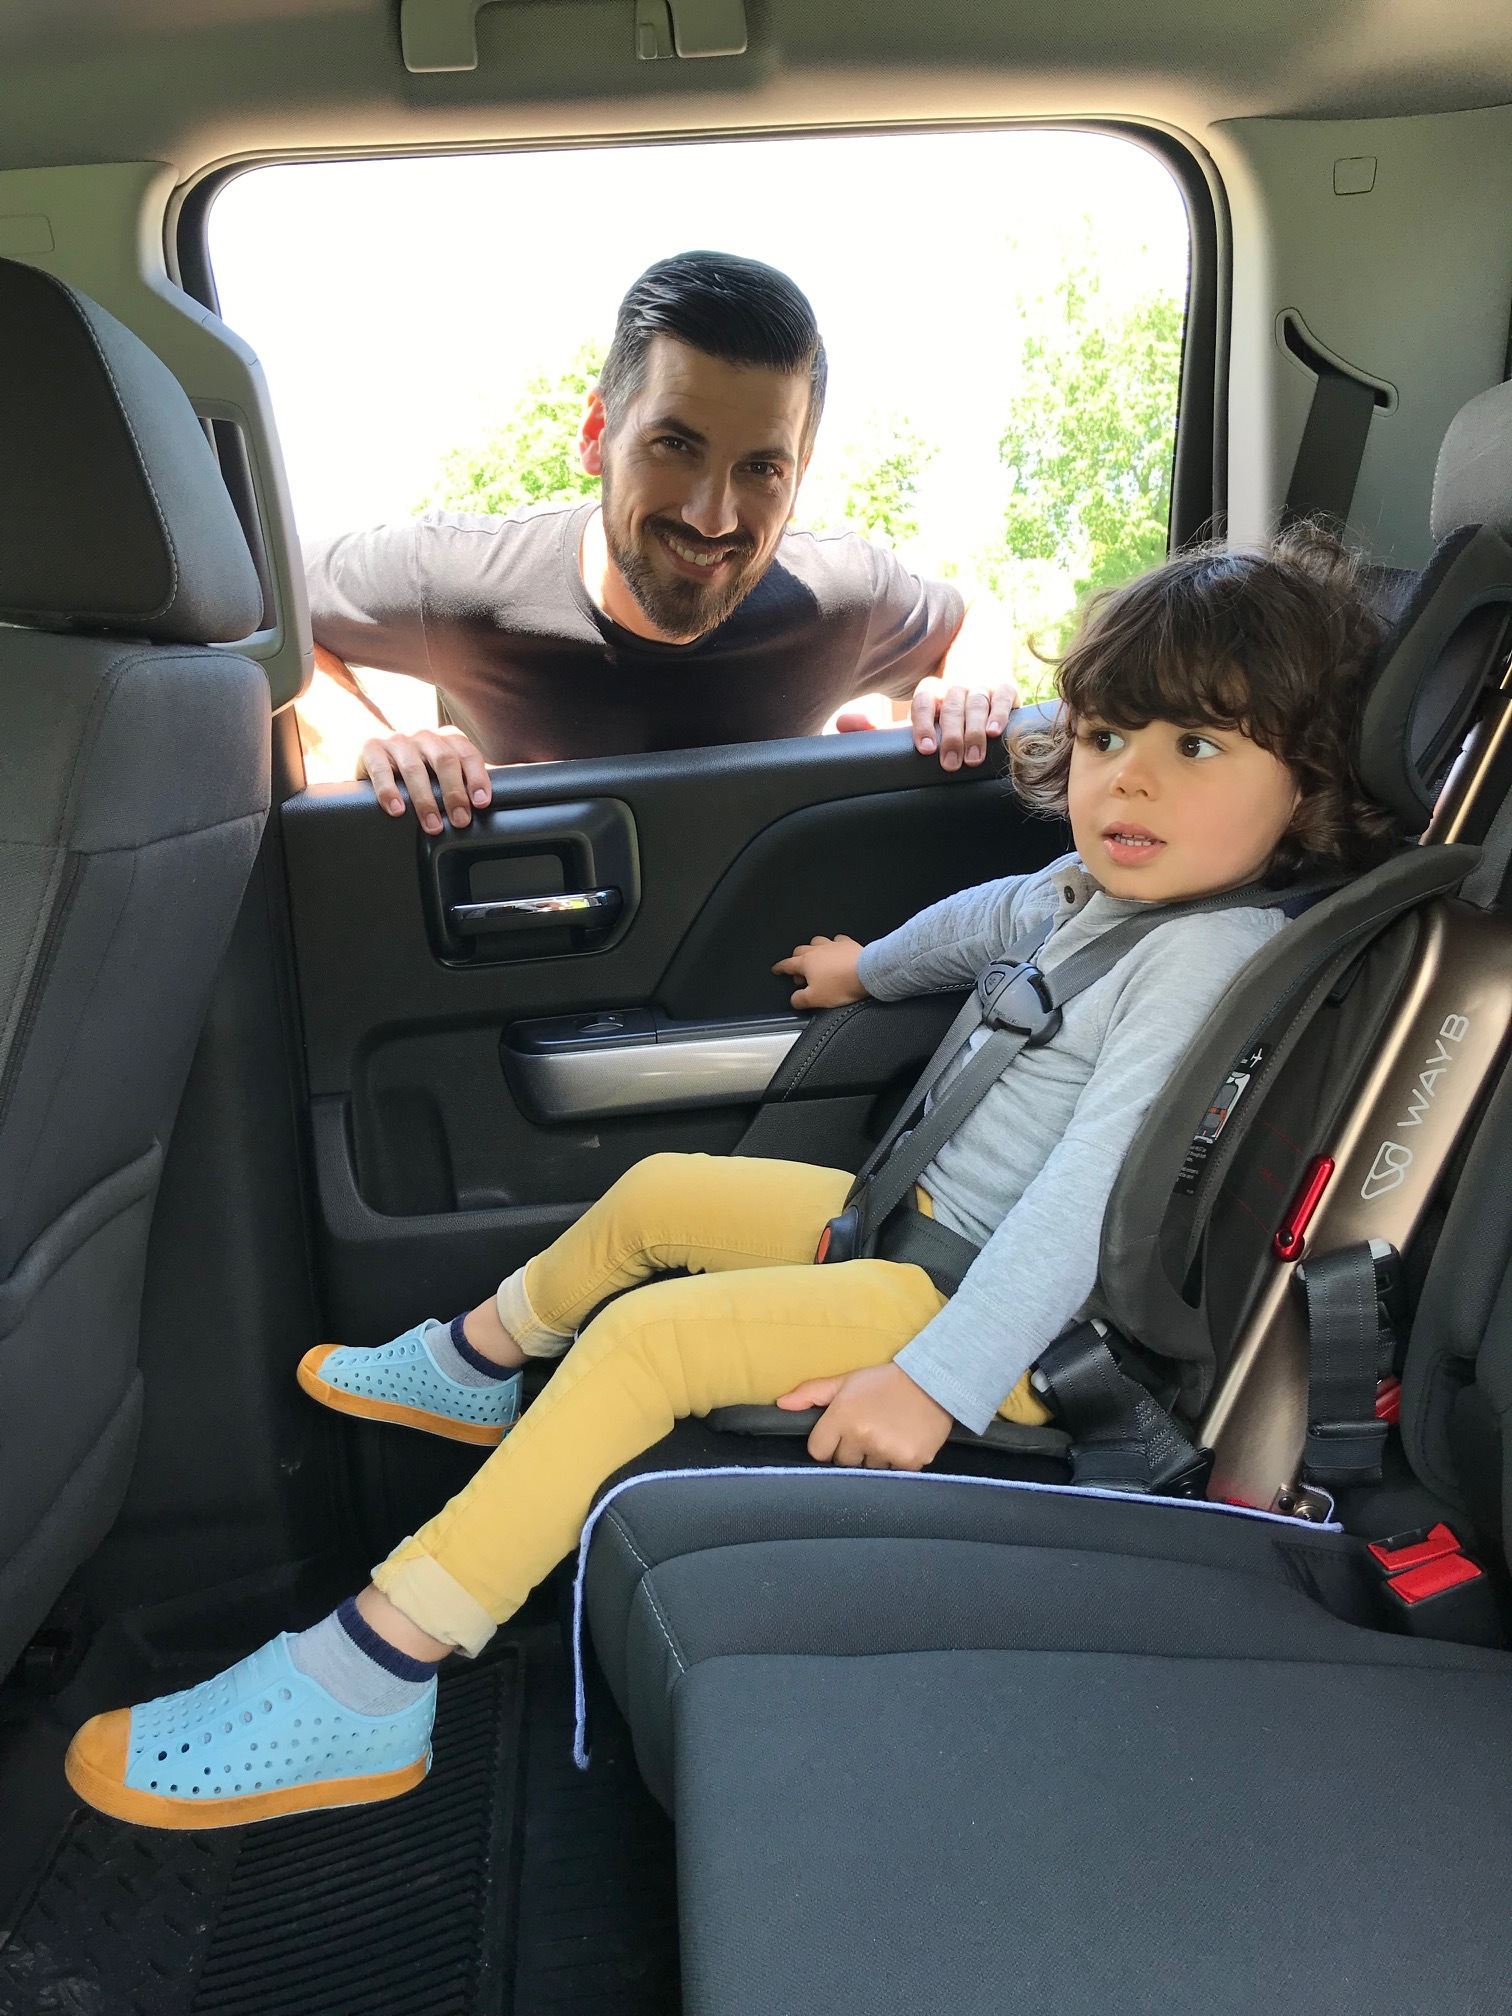 Ready to ride:  Kitson strapped into the new  Pico  car seat.